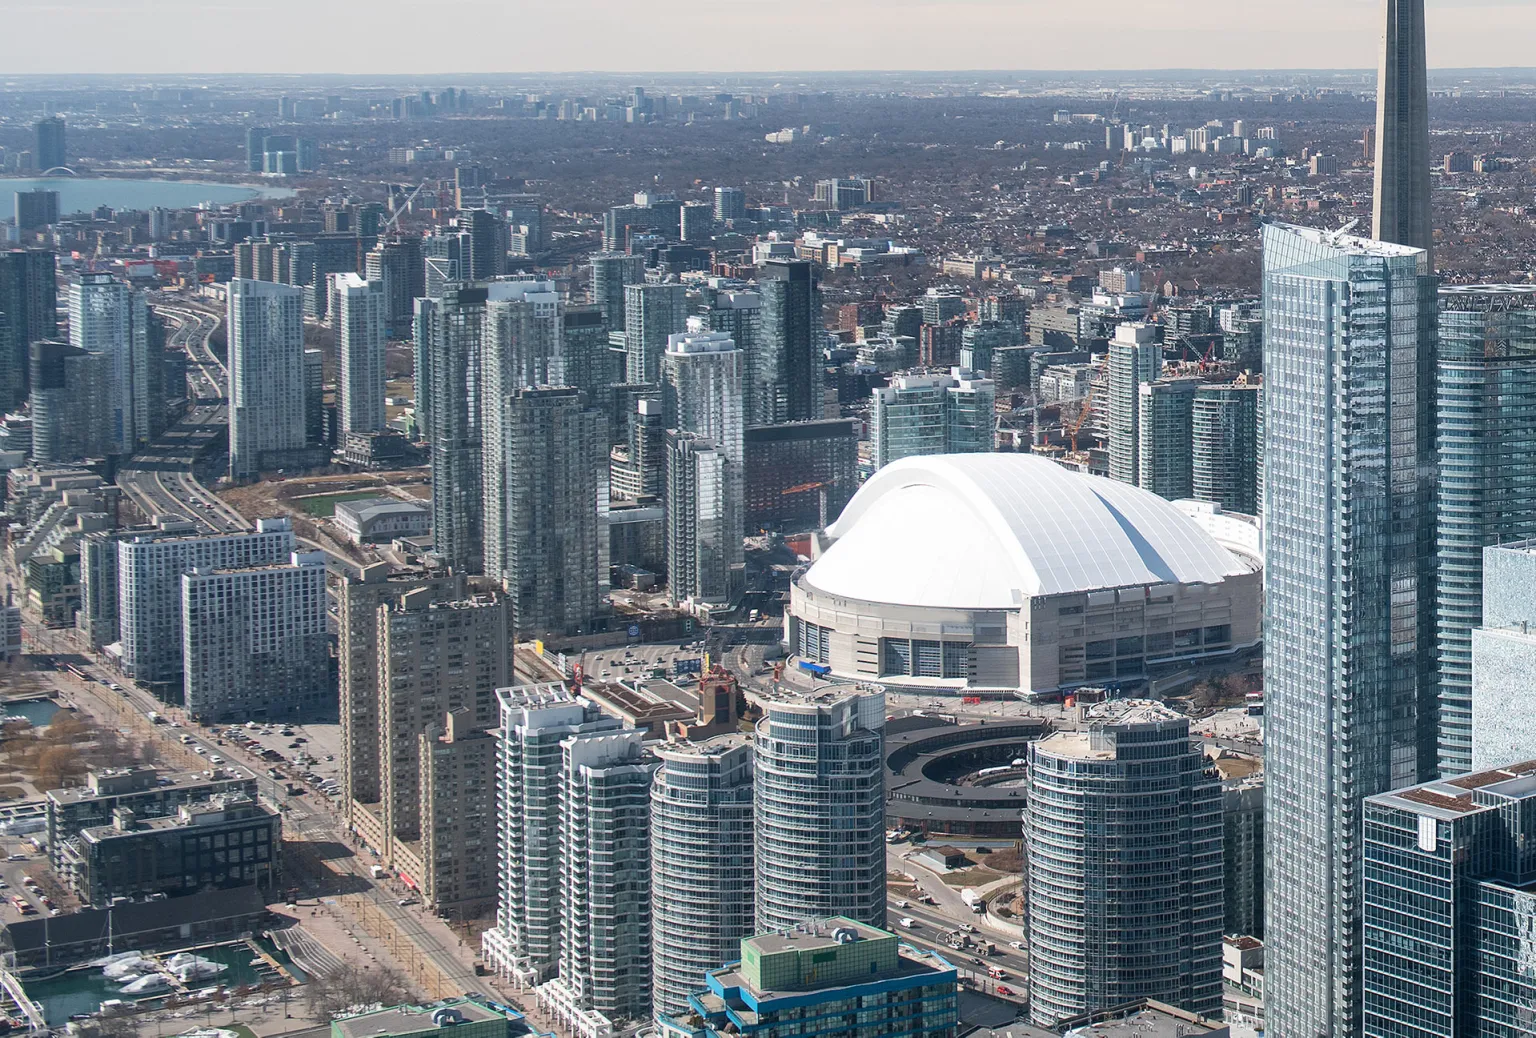 CANADA IS SPENDING $73 BILLION ON AFFORDABLE HOUSING, AND IT WILL PUSH PRICES HIGHER